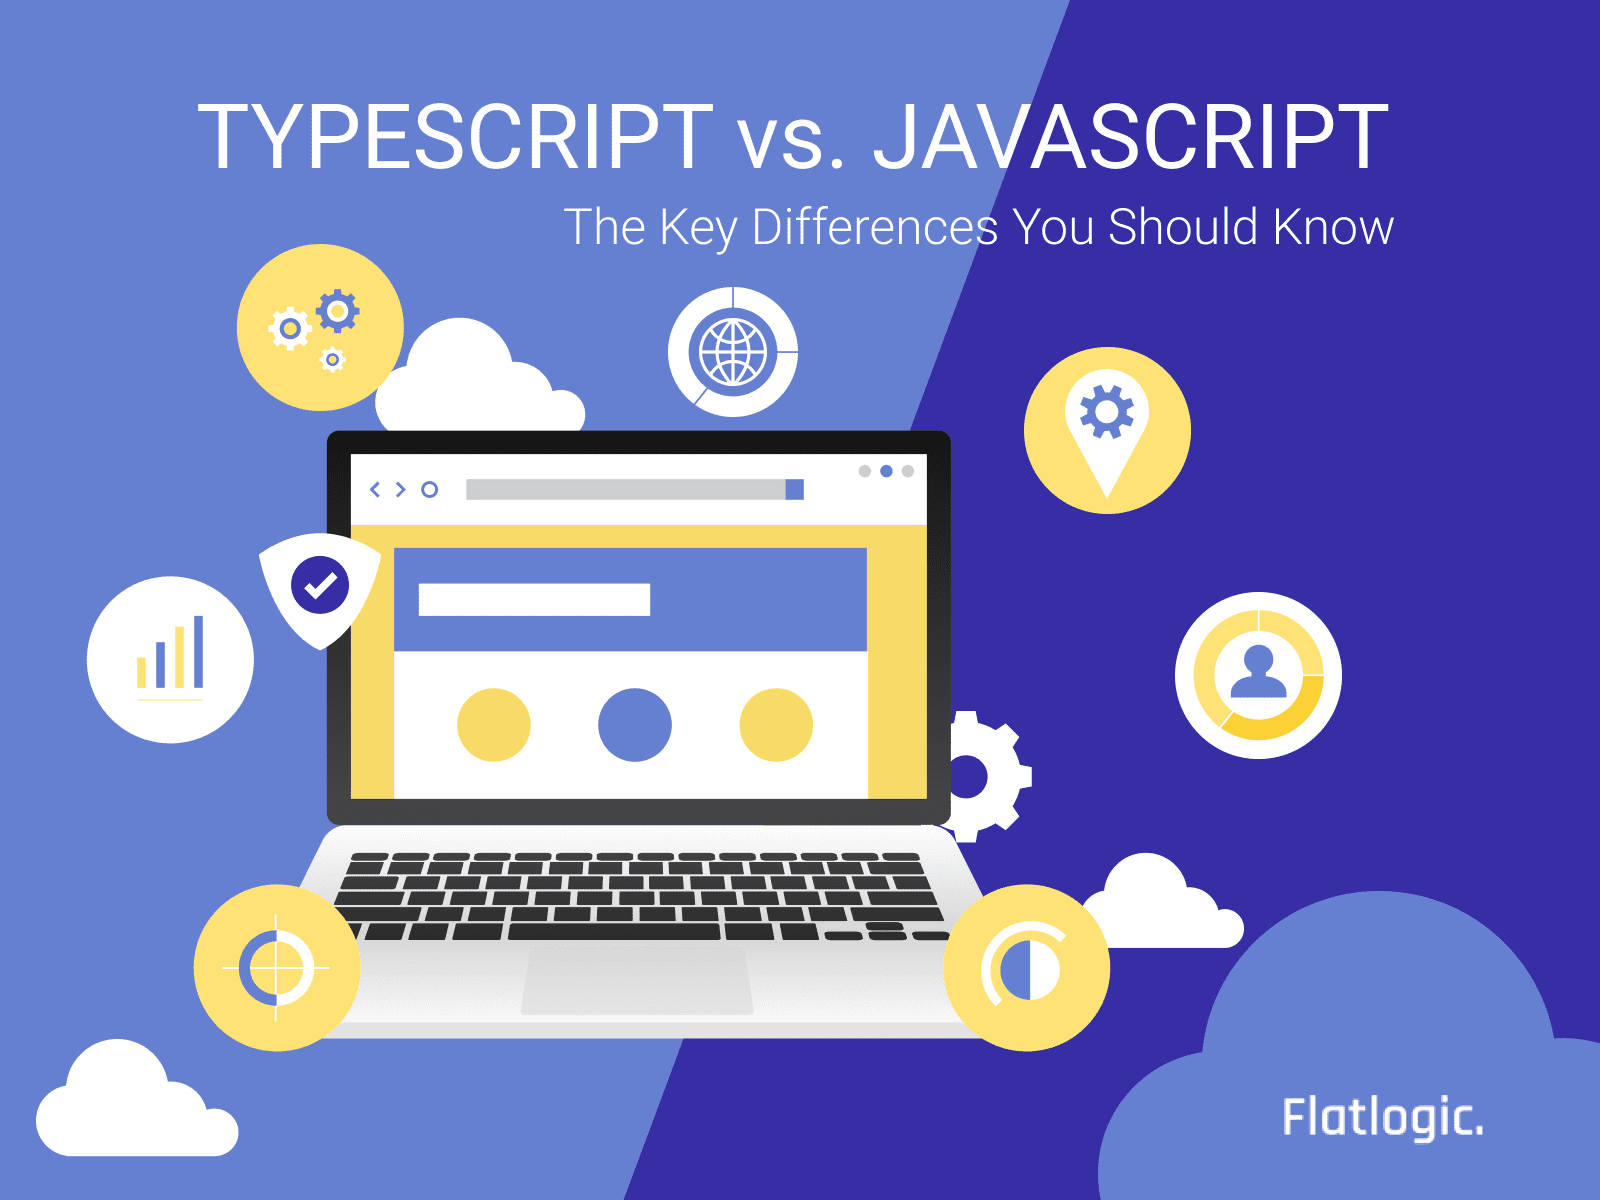 Typescript vs. Javascript: The Key Differences You Should Know in 2021